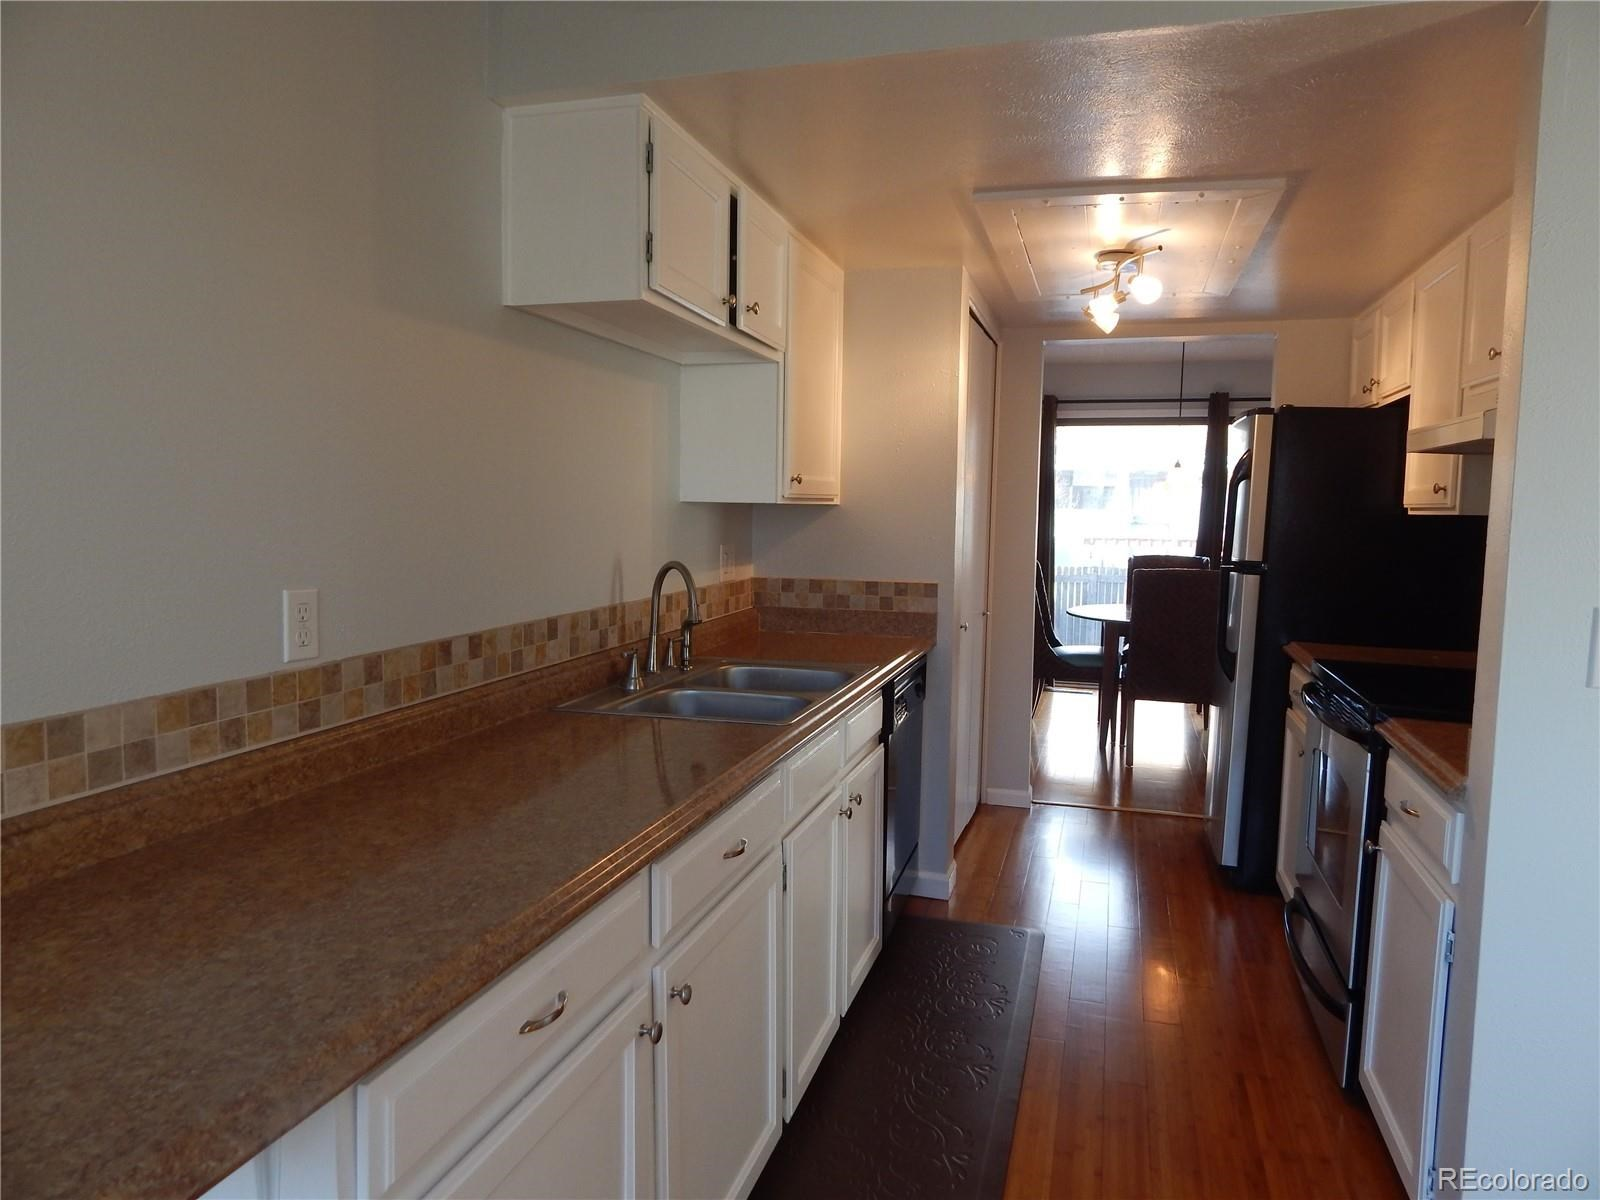 MLS# 9621012 - 4 - 7948 W 90th Avenue, Westminster, CO 80021